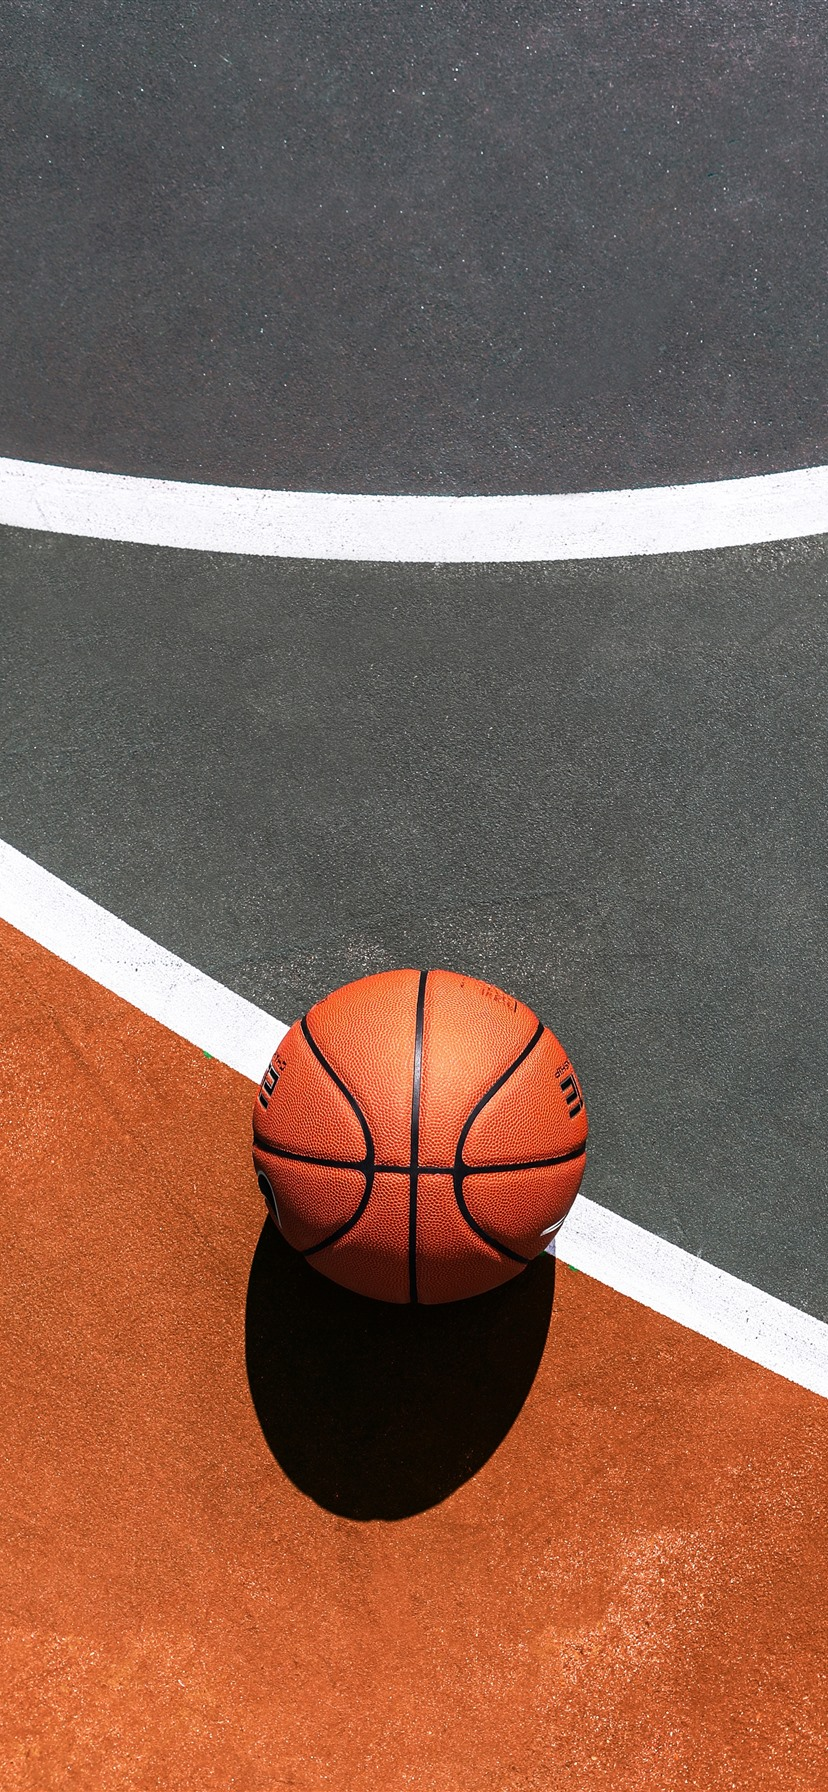 Wallpaper Basketball Ground 2880x1800 Hd Picture Image